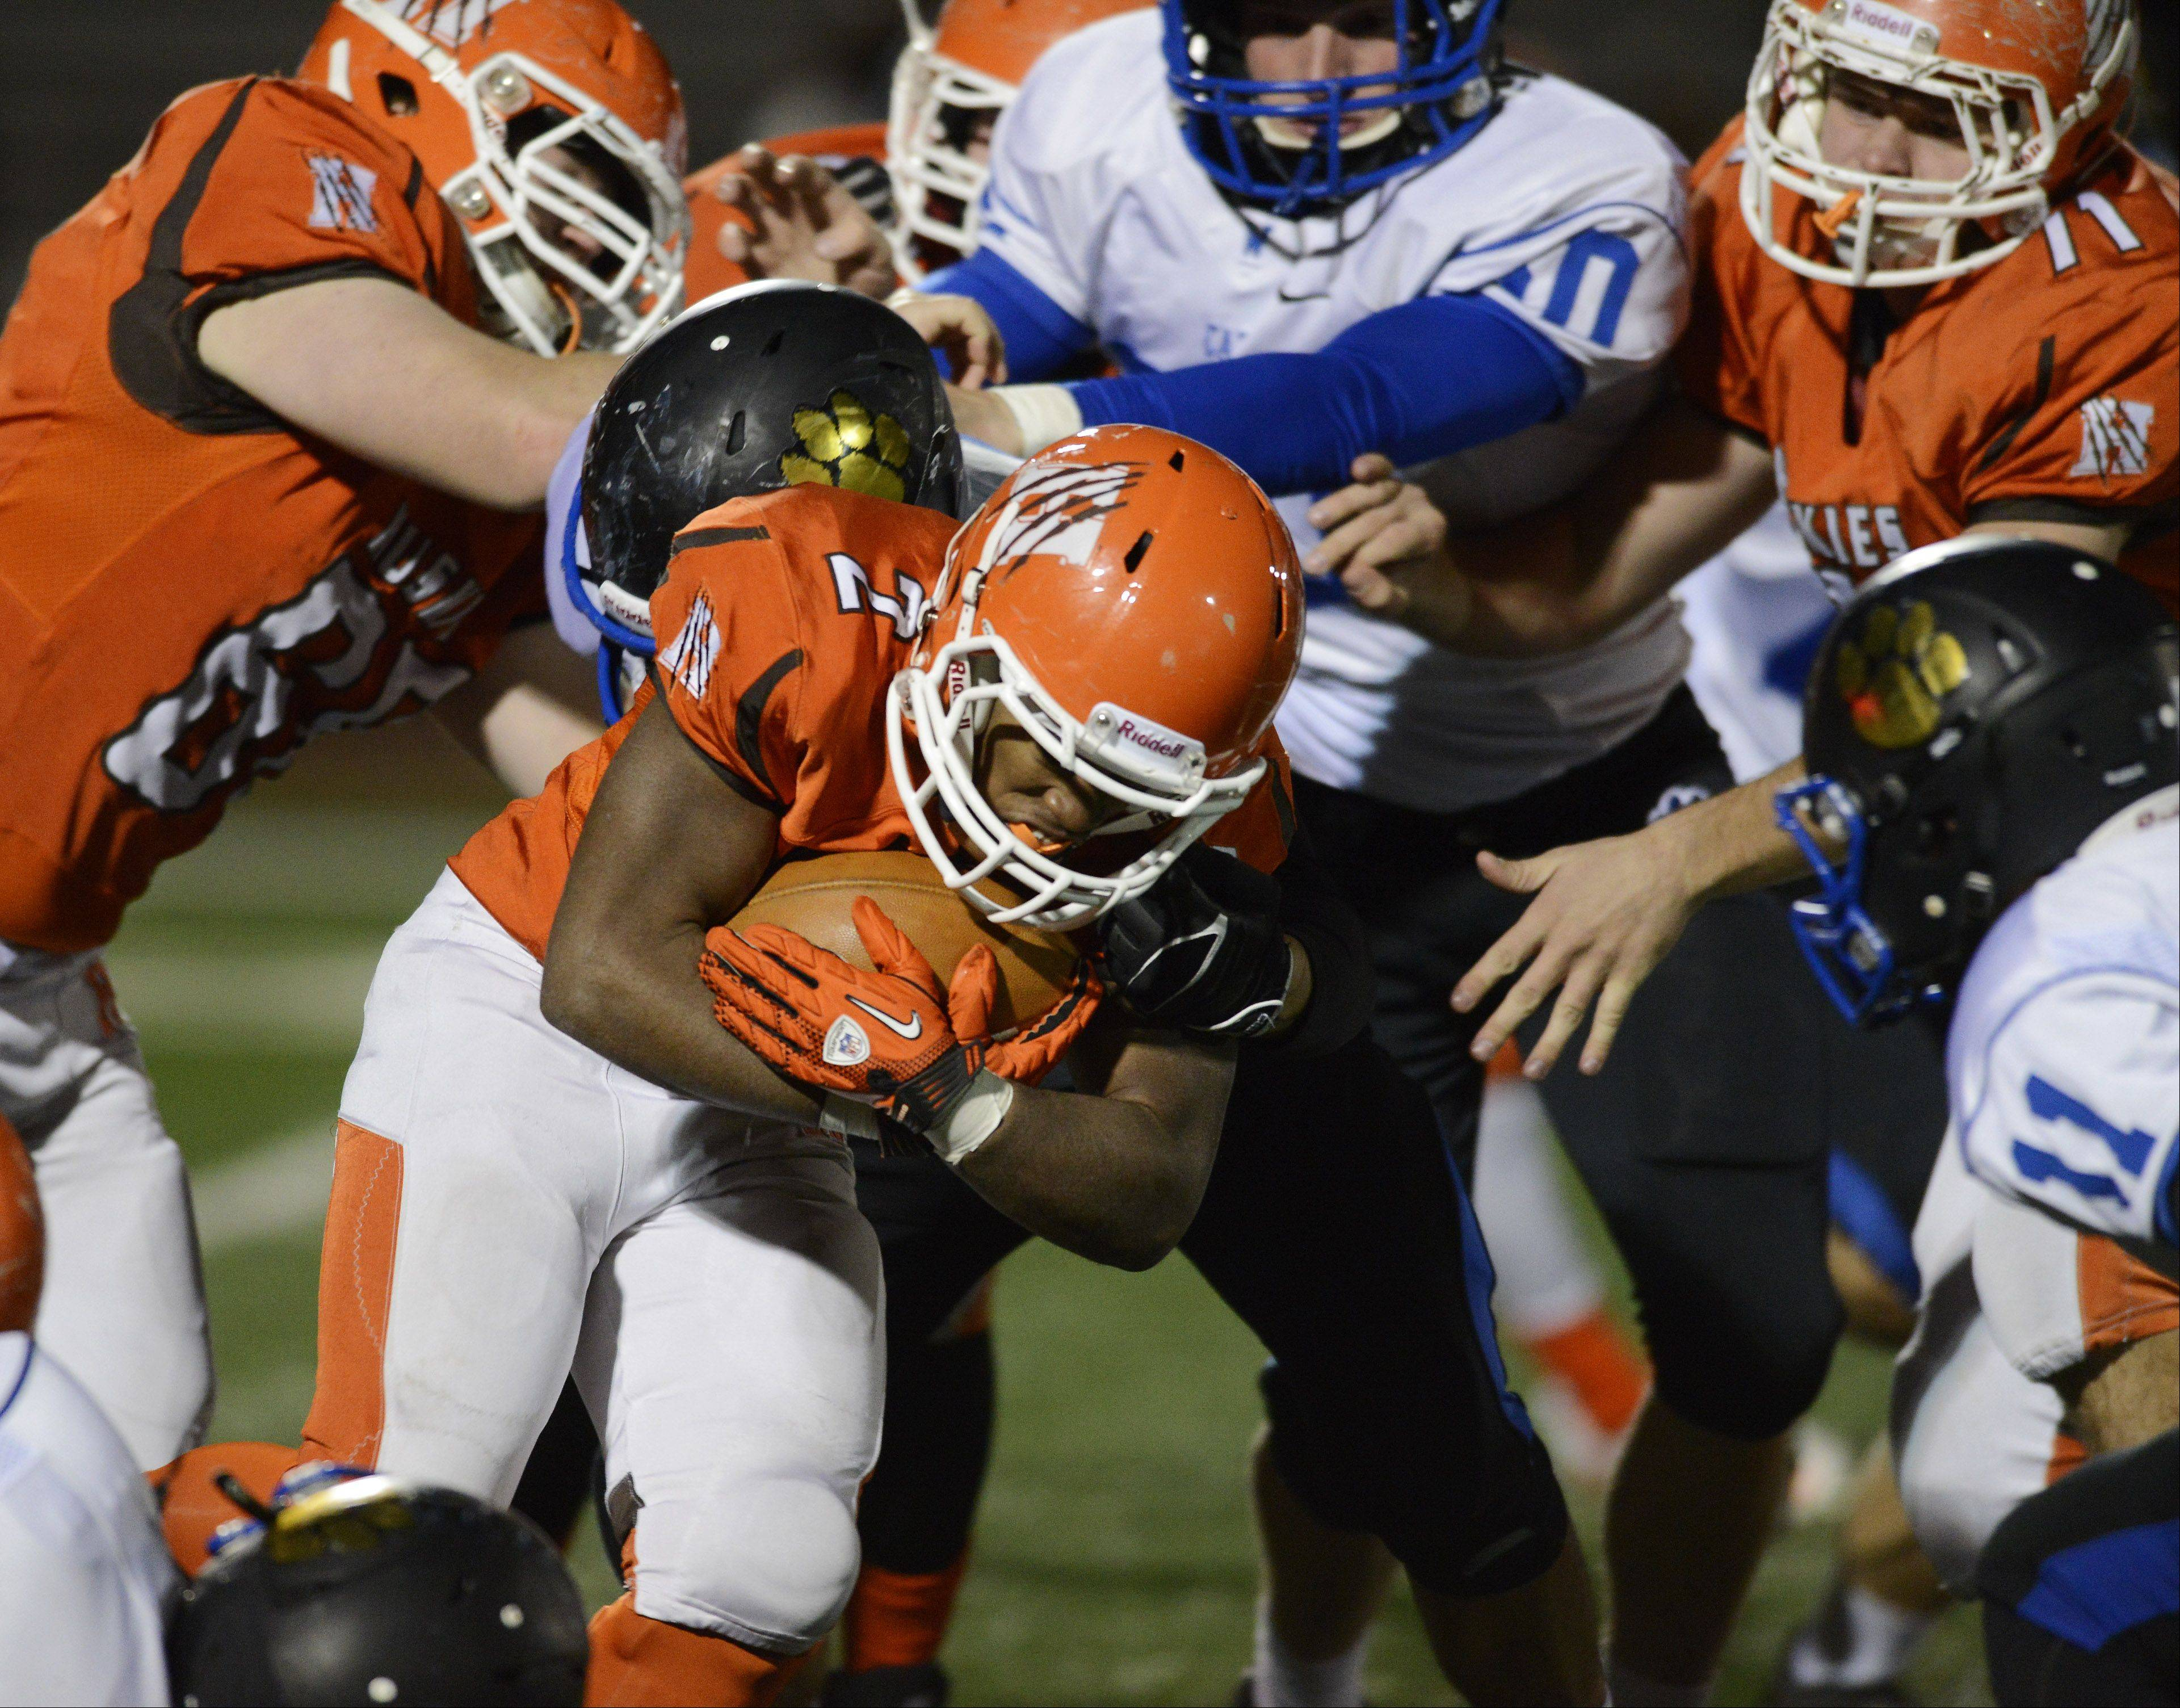 Images: Hersey vs. Wheeling football